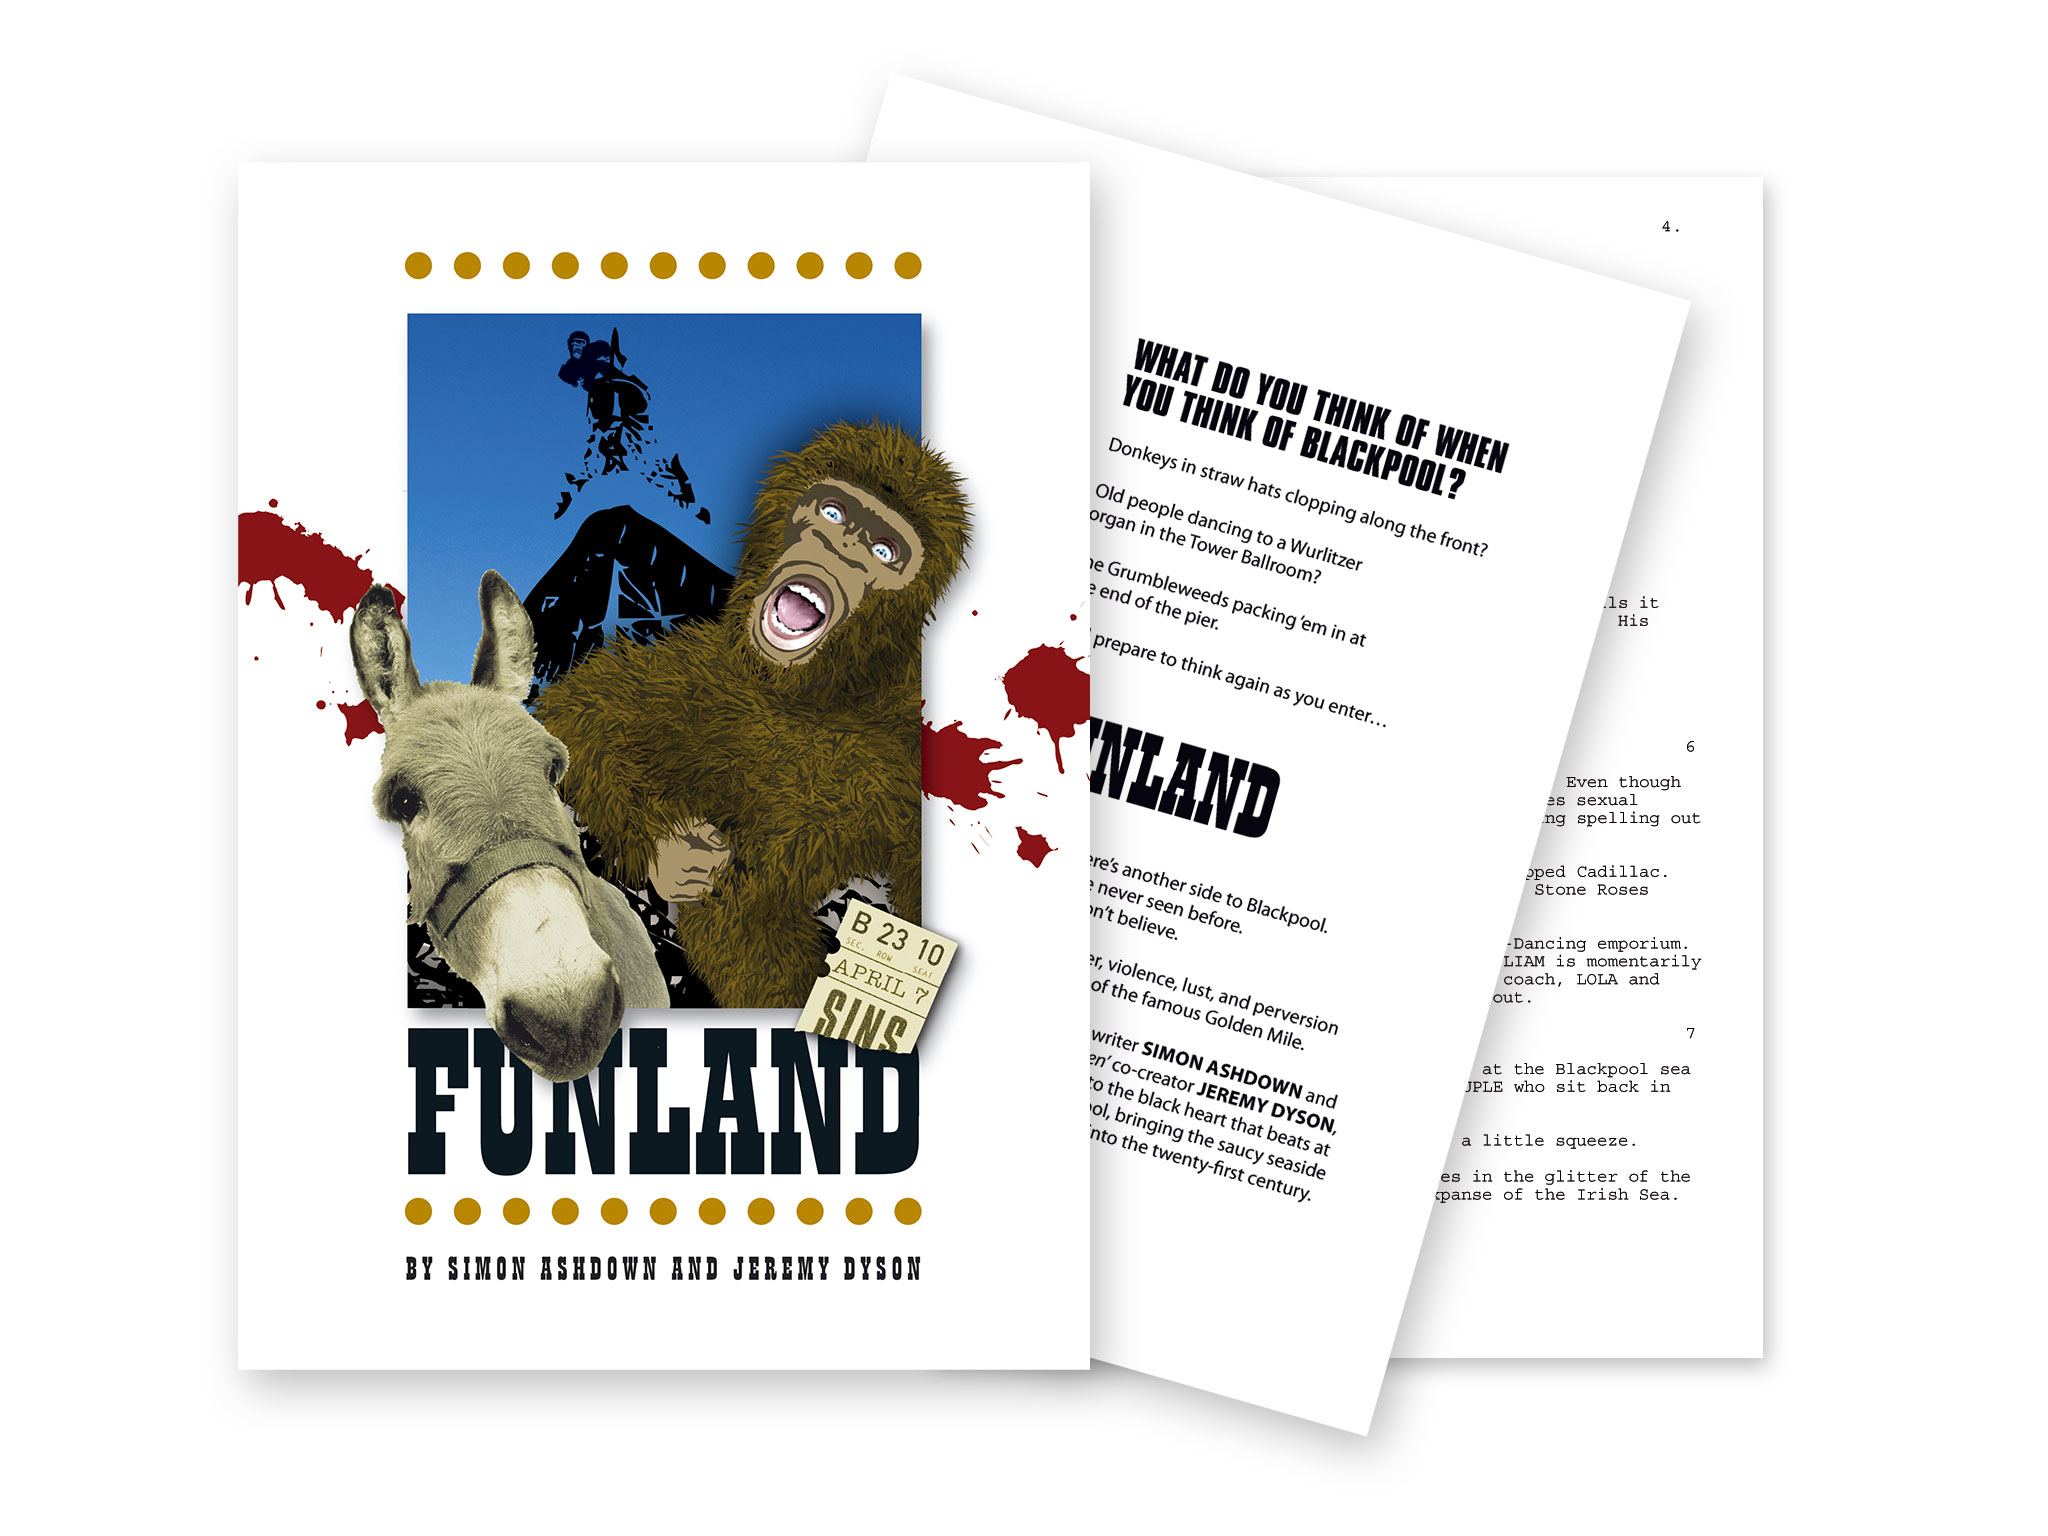 Funland pitch document showing cover and inner pages